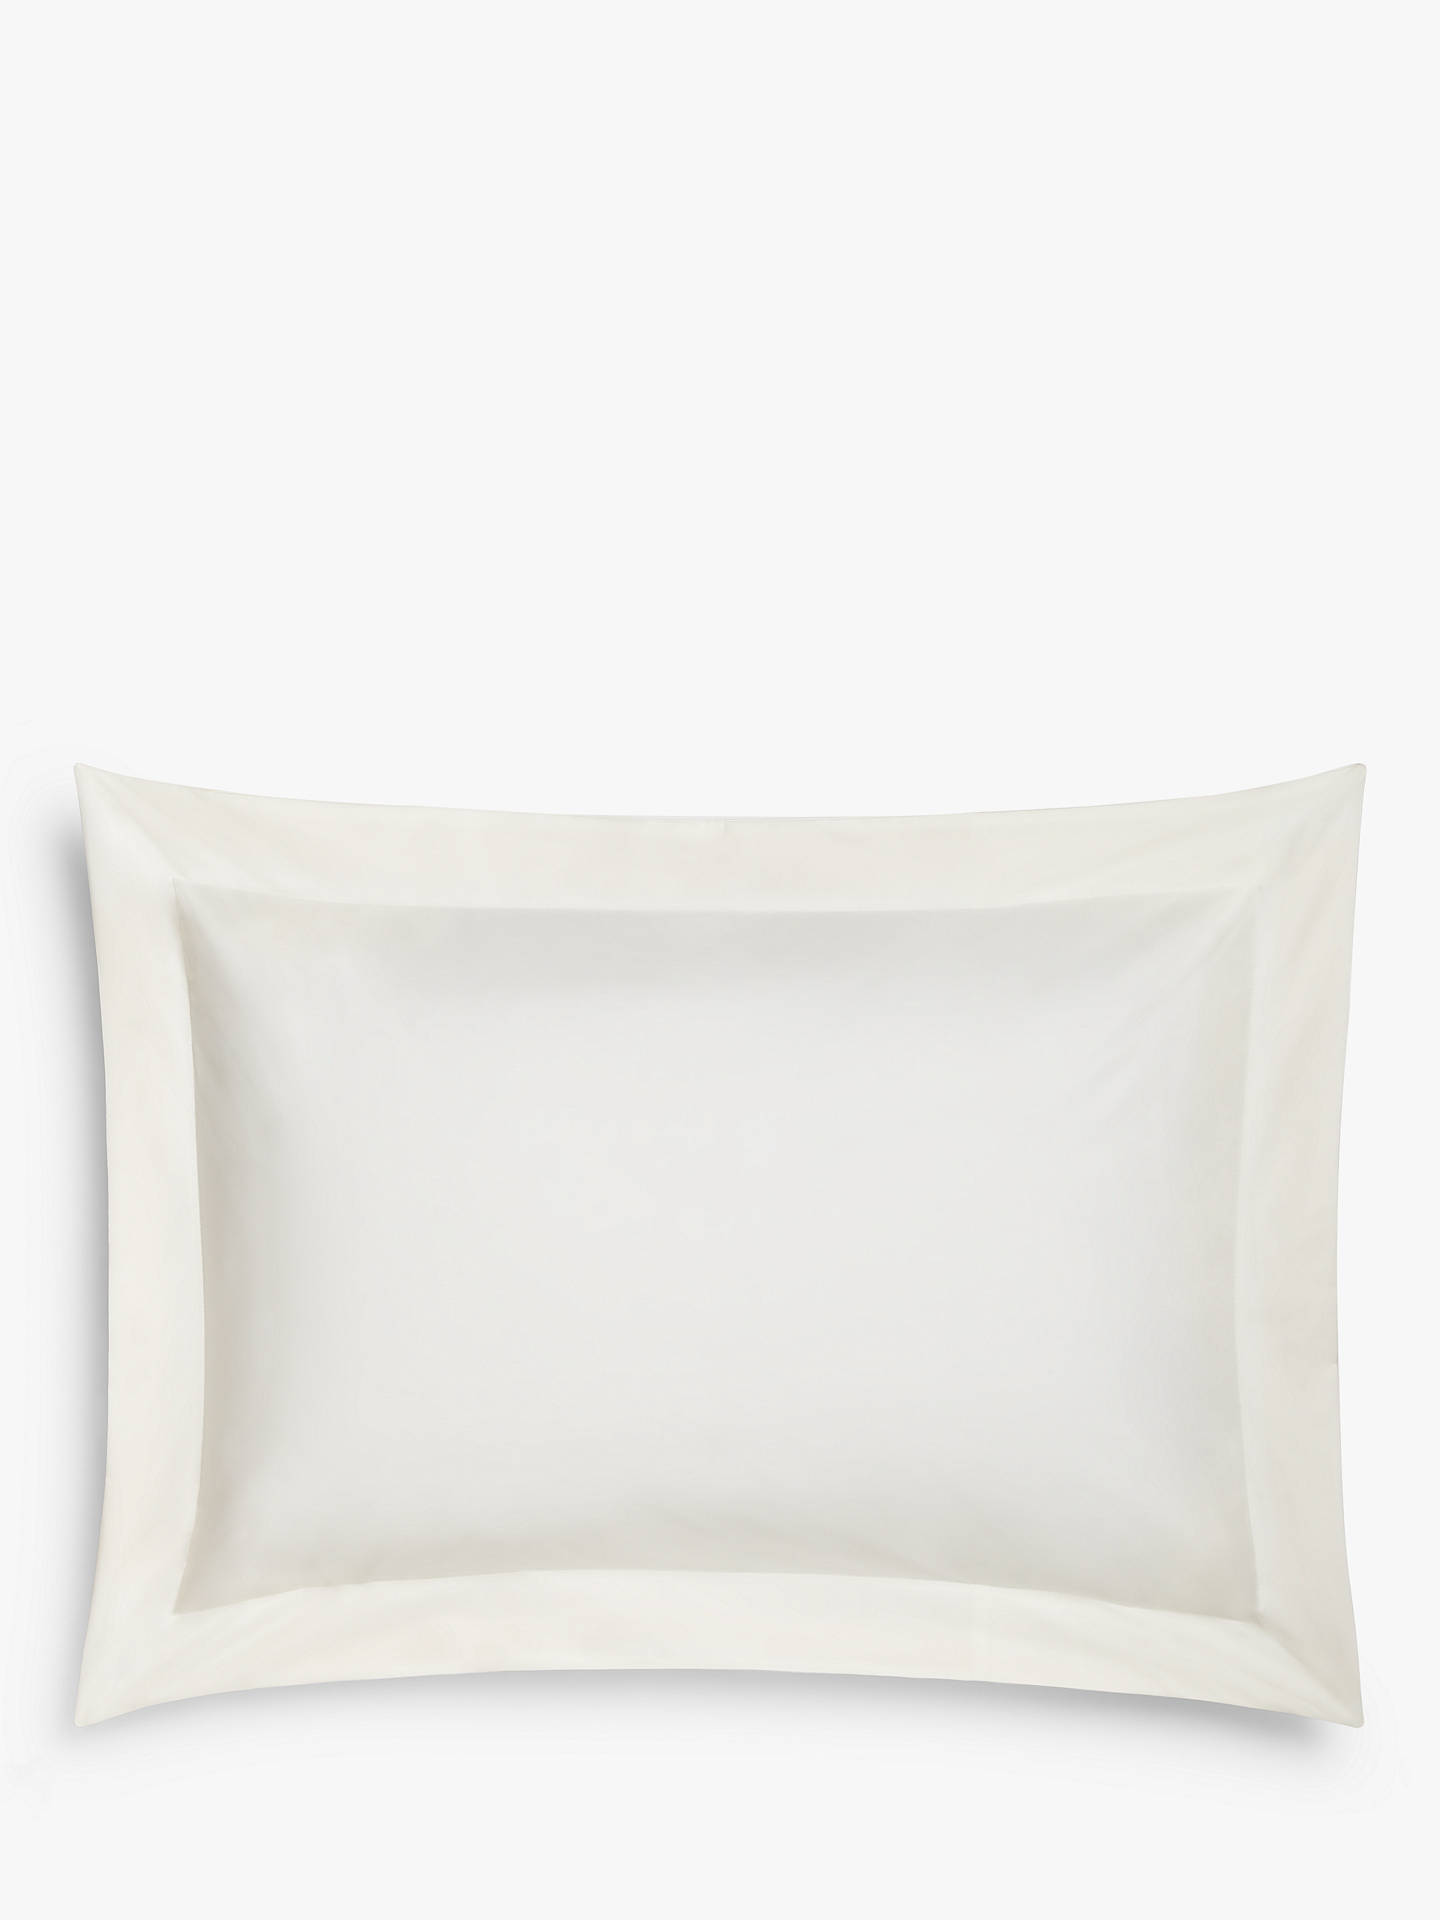 BuyJohn Lewis & Partners Easy Care 200 Thread Count Polycotton Standard Pillowcase, Cream Online at johnlewis.com